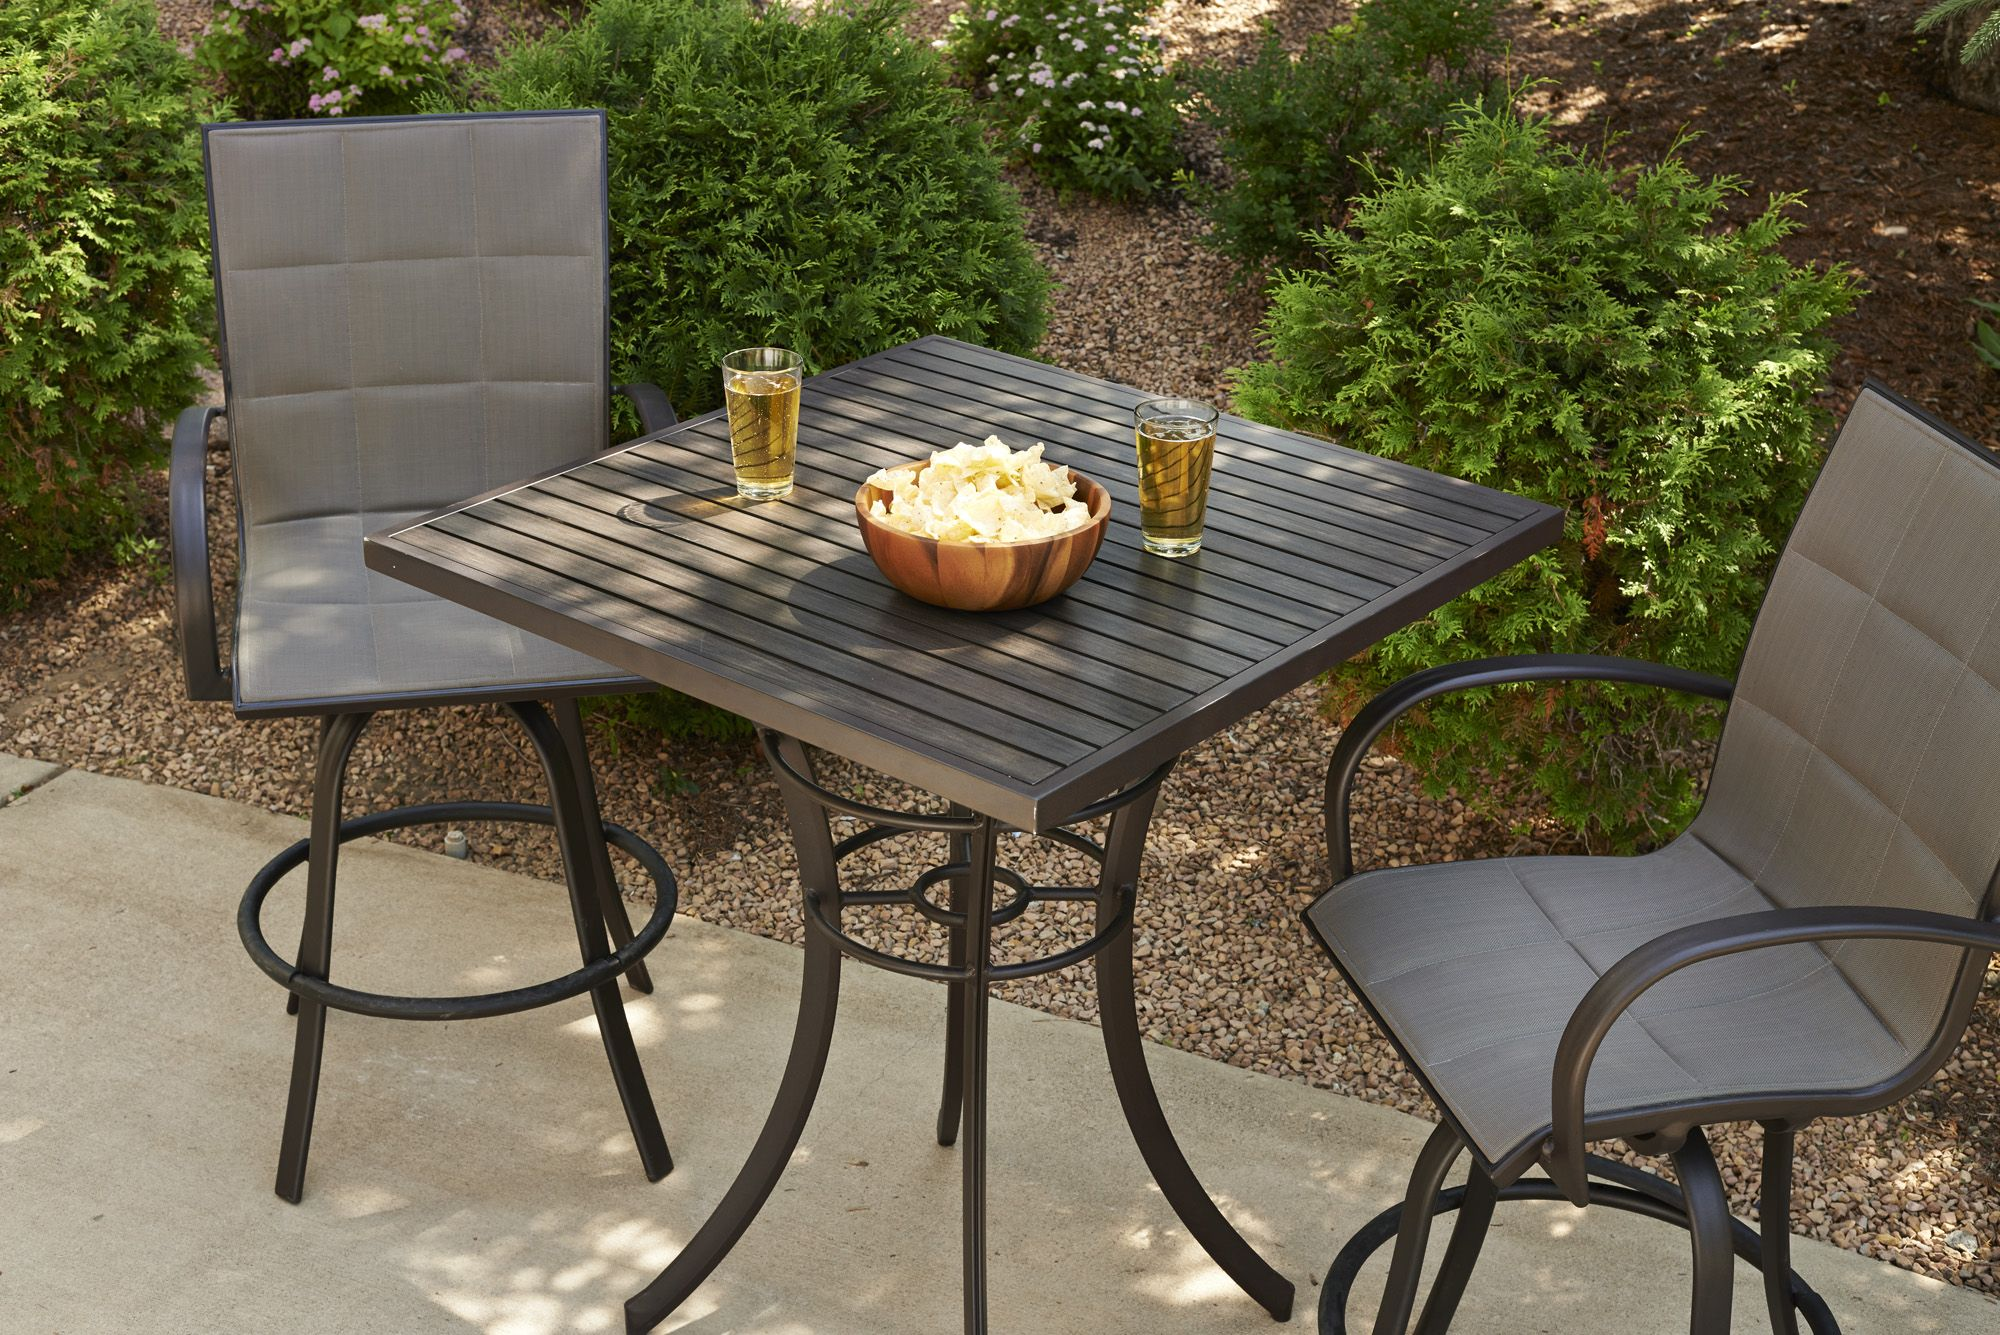 Pub Table And Bar Stools Perfect For Any Outdoor Space 户外家具 - Outdoor pub table fire pit